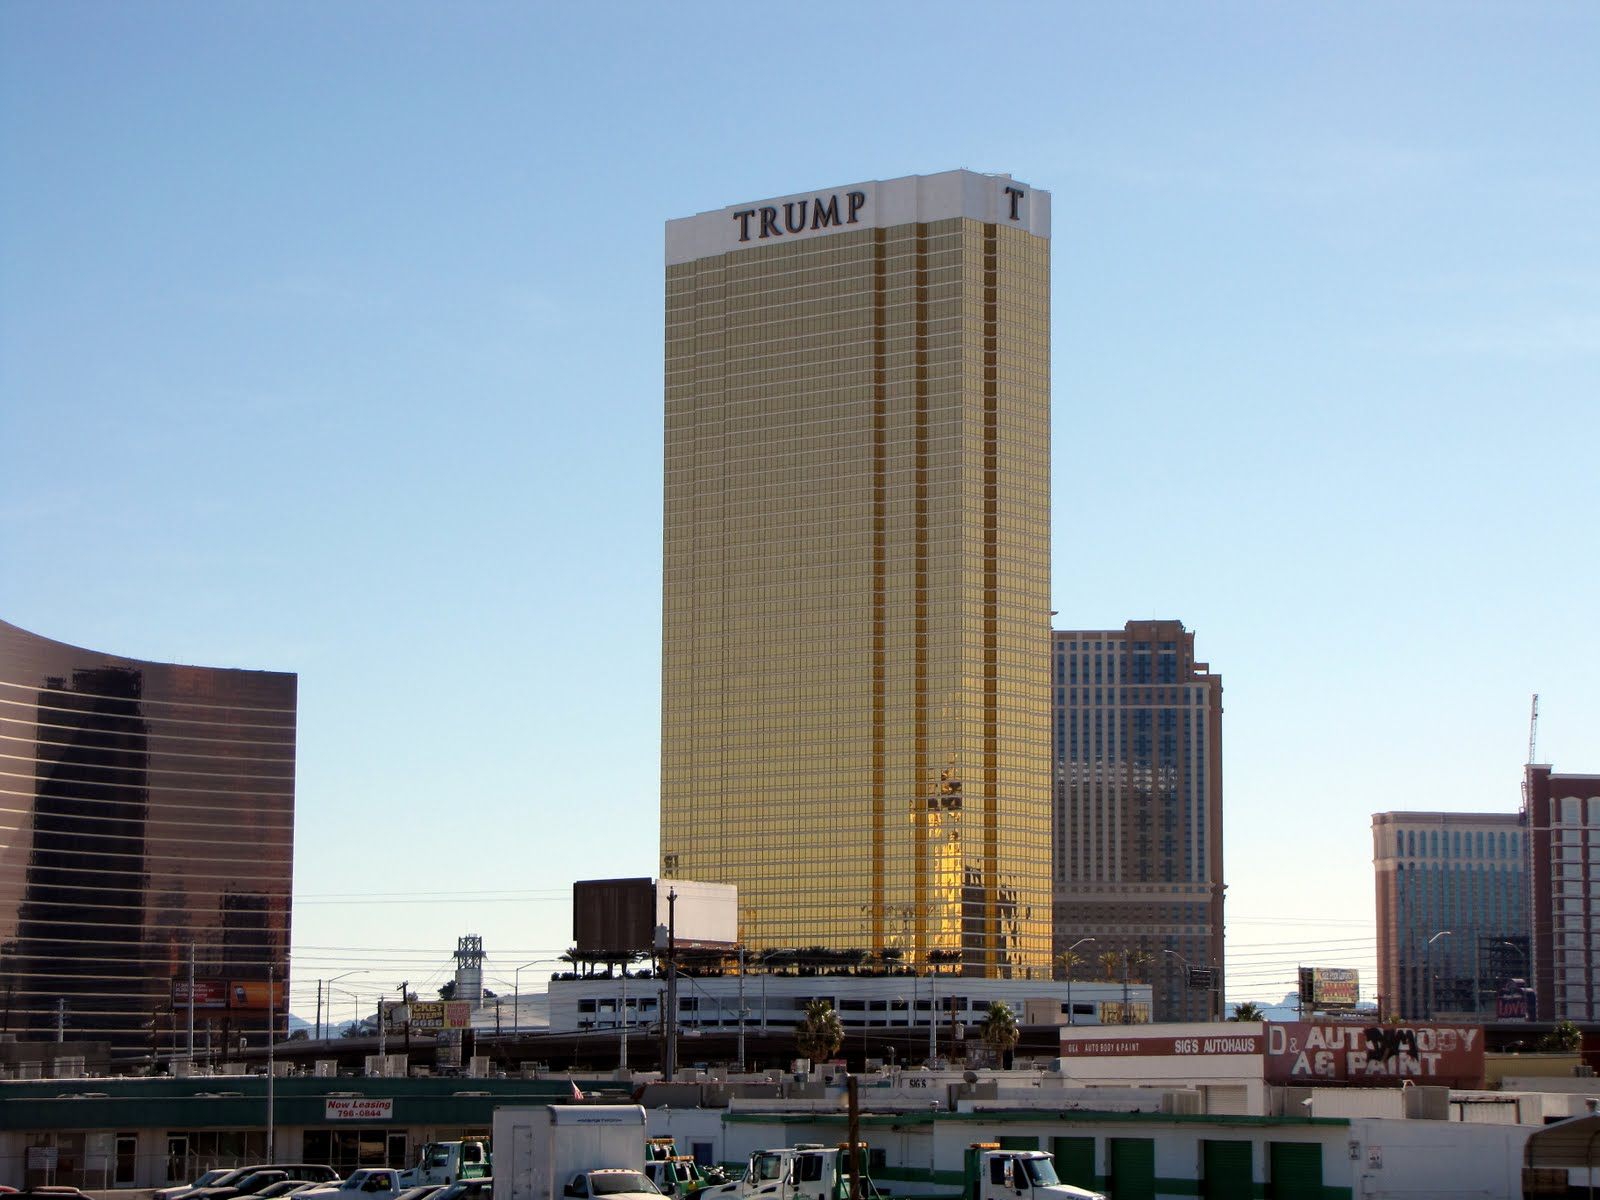 Best Hotels For You: Trump Hotel Las Vegas